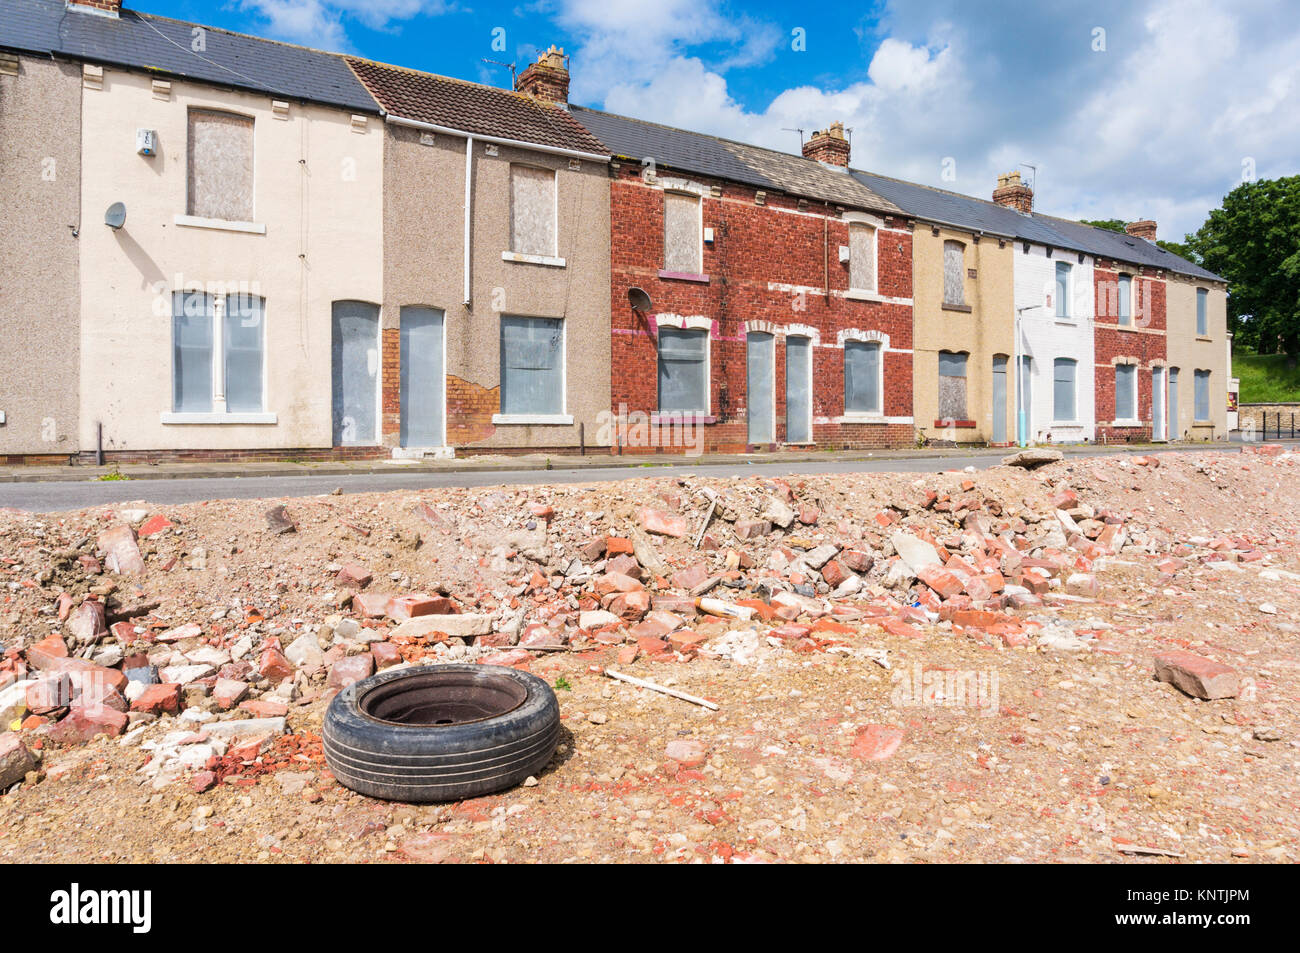 derelict terraced houses England Hartlepool england abandoned houses on building site ready for demolition or redevelopment - Stock Image